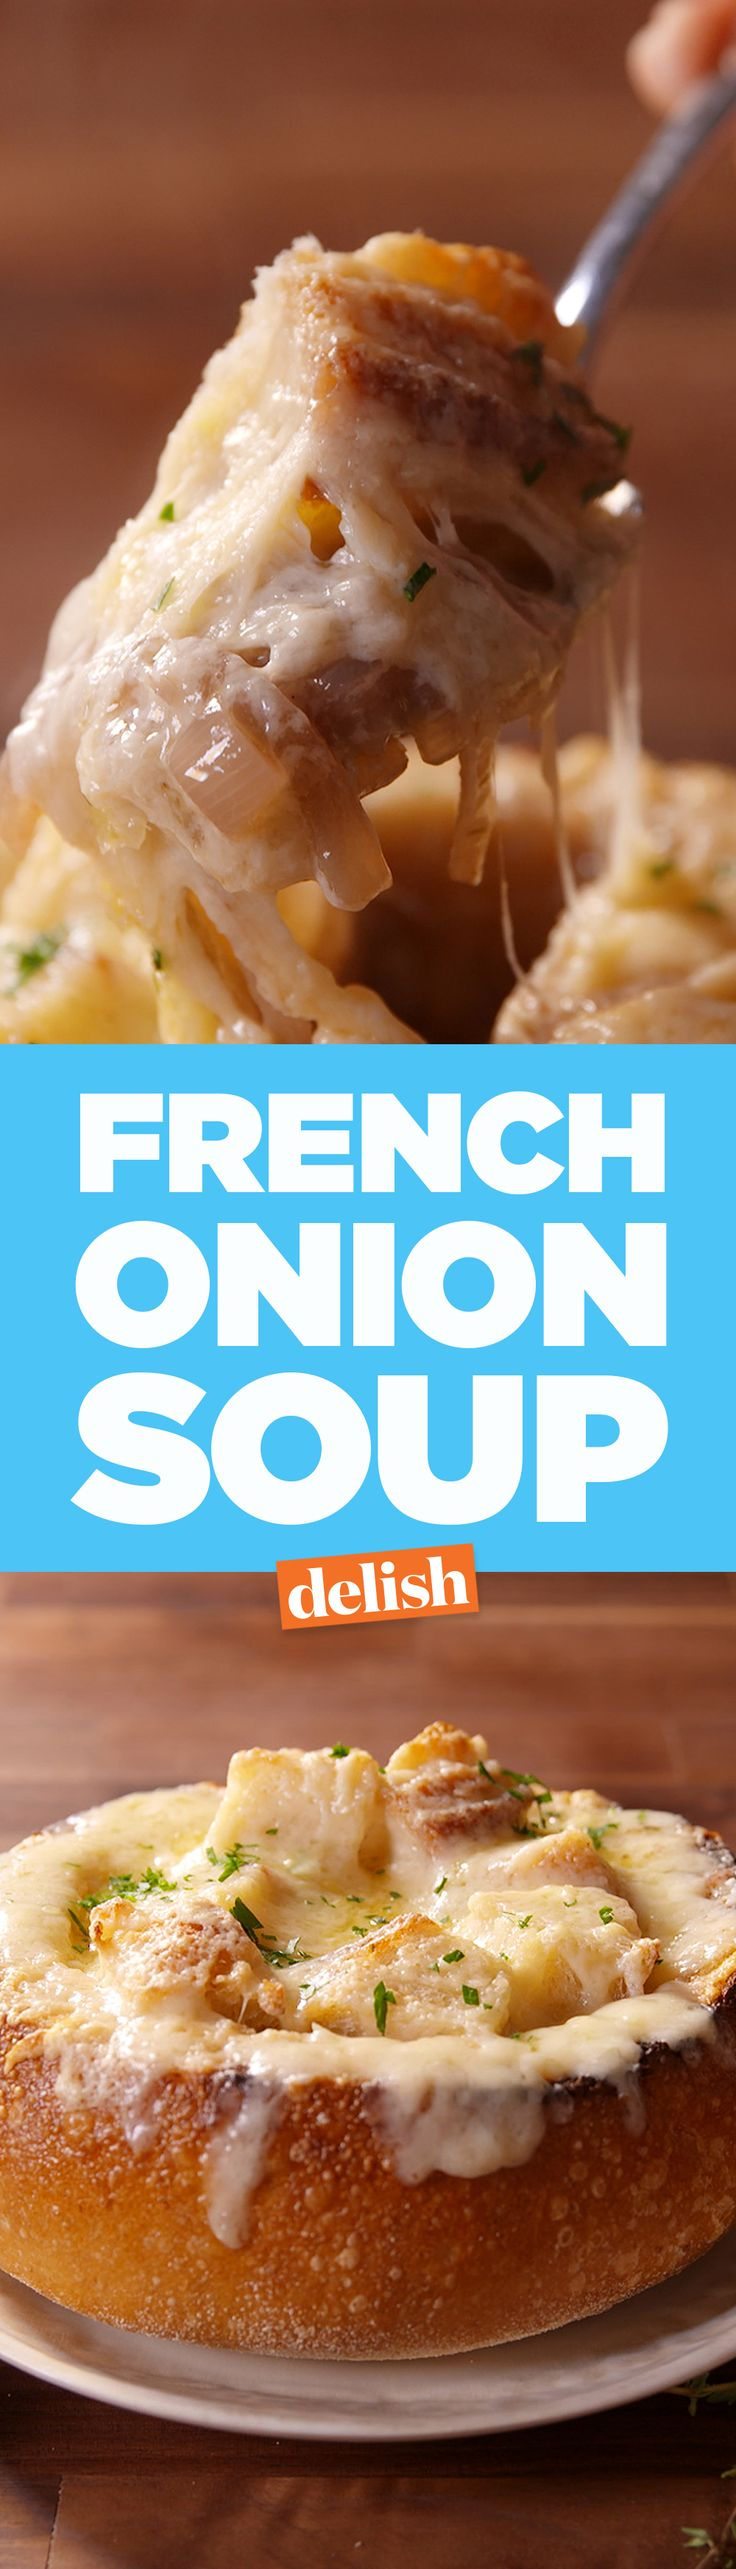 Our French Onion Soup in a bread bowl will save you a trip to Panera Bread. Get the recipe on Delish.com.